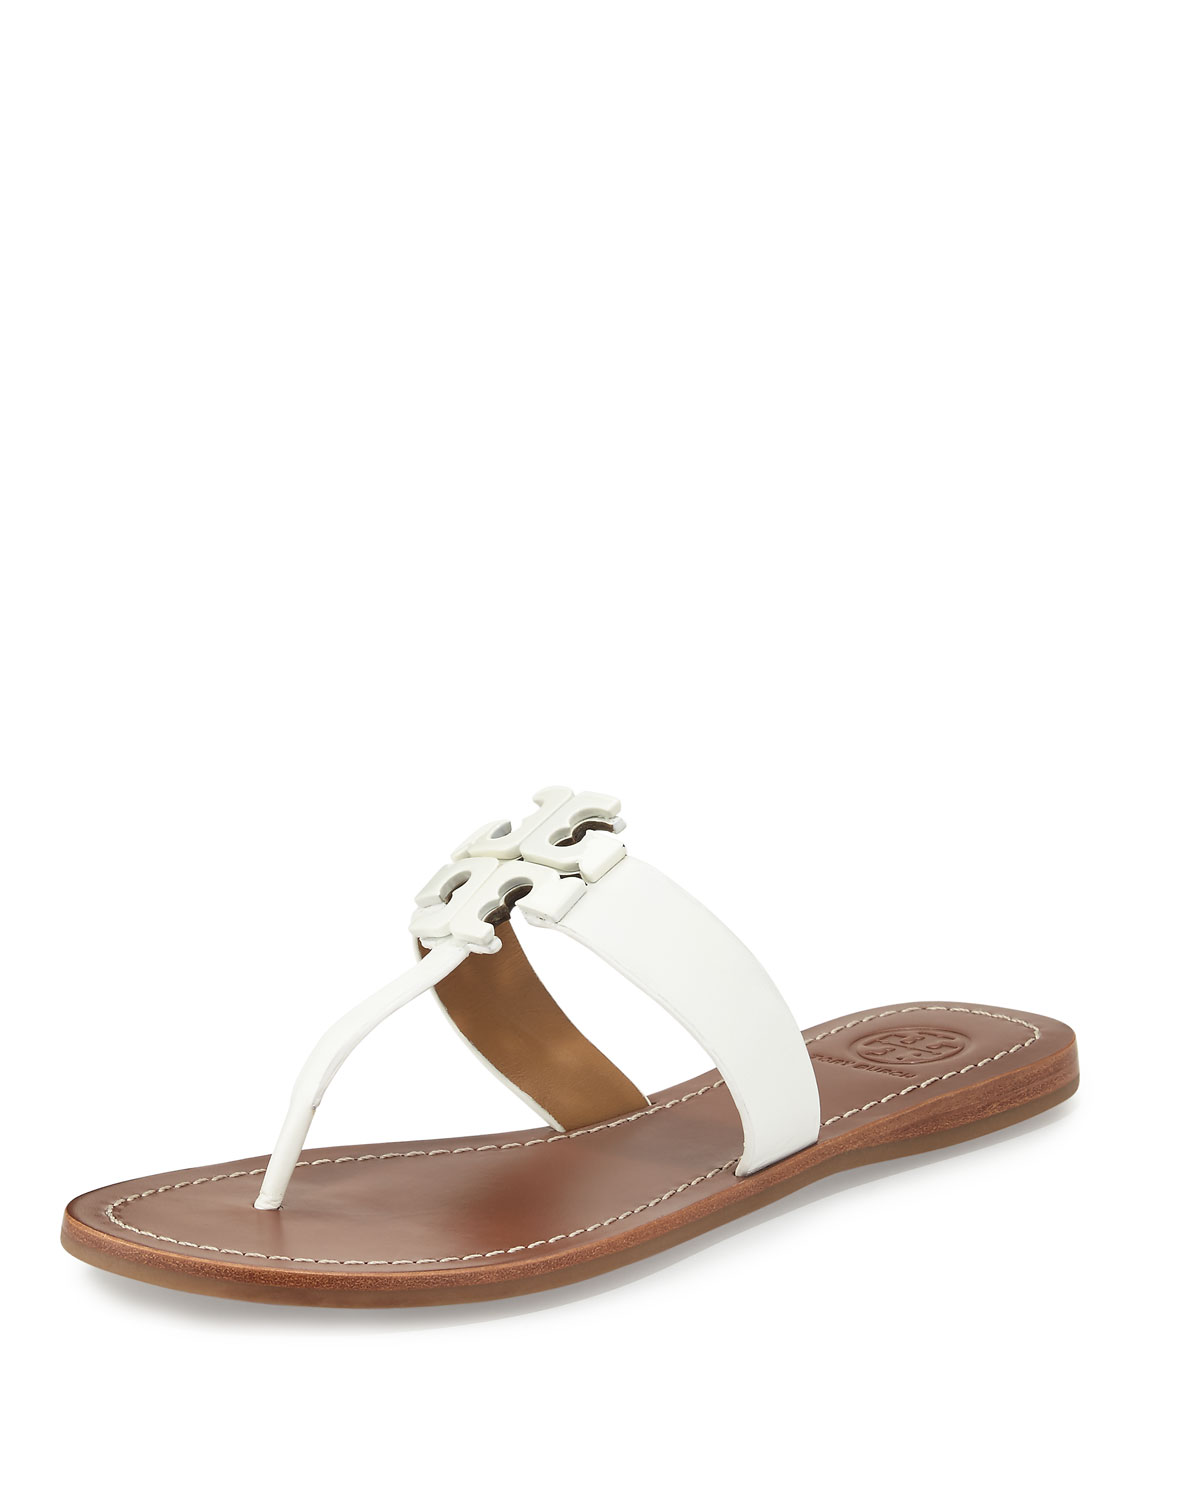 0f1e0667374633 Tory Burch Moore 2 Leather Thong Sandal